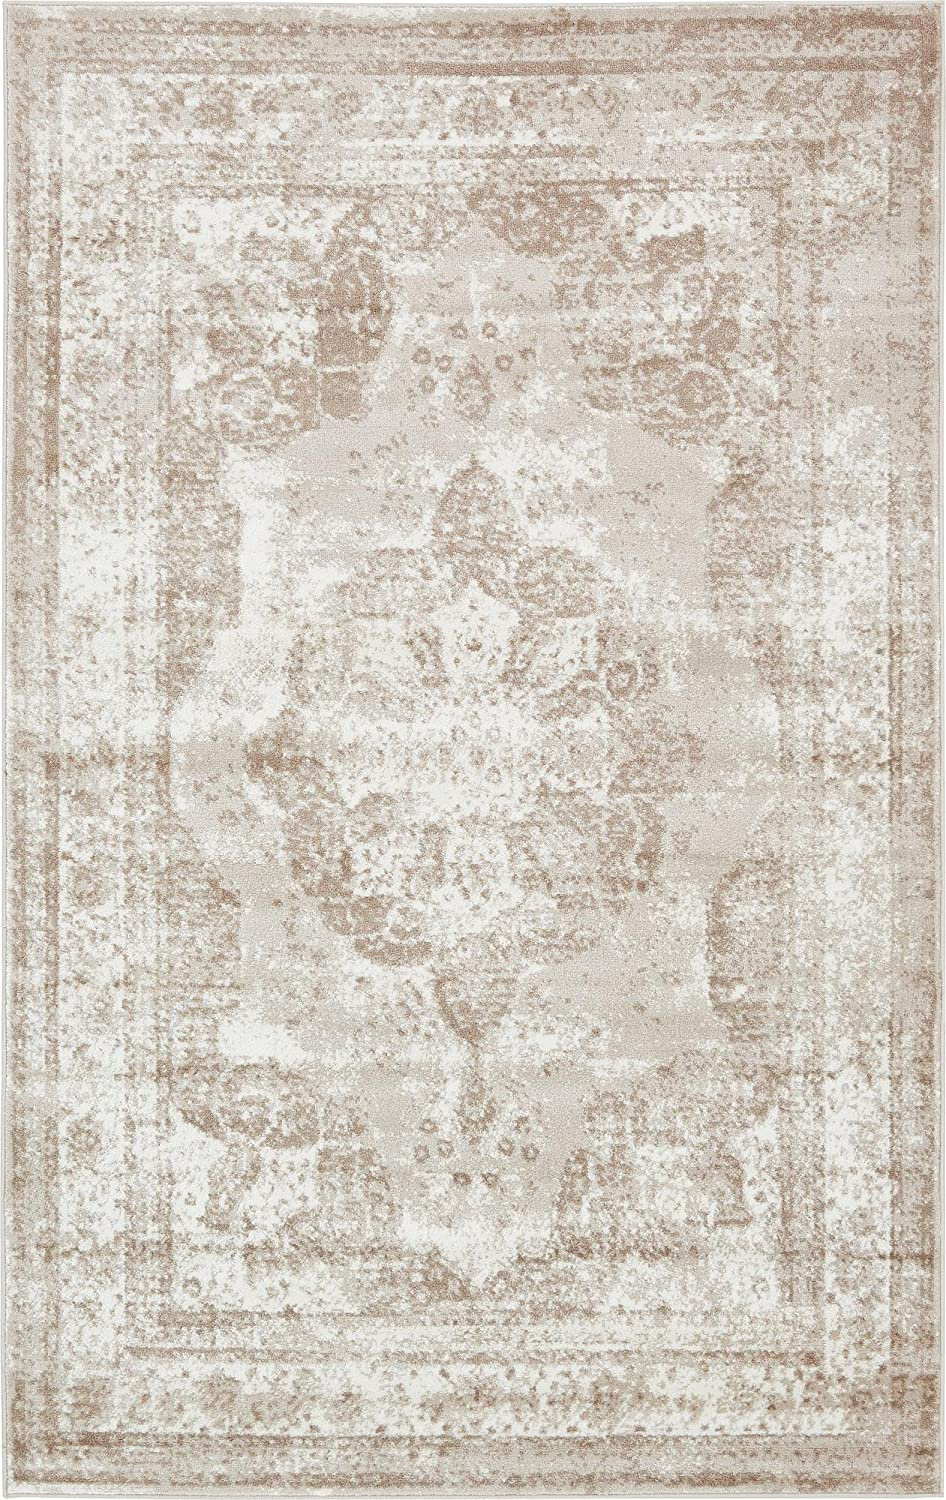 Unique Loom 3134074 Area Rug, 5' x 8' Rectangle, Beige